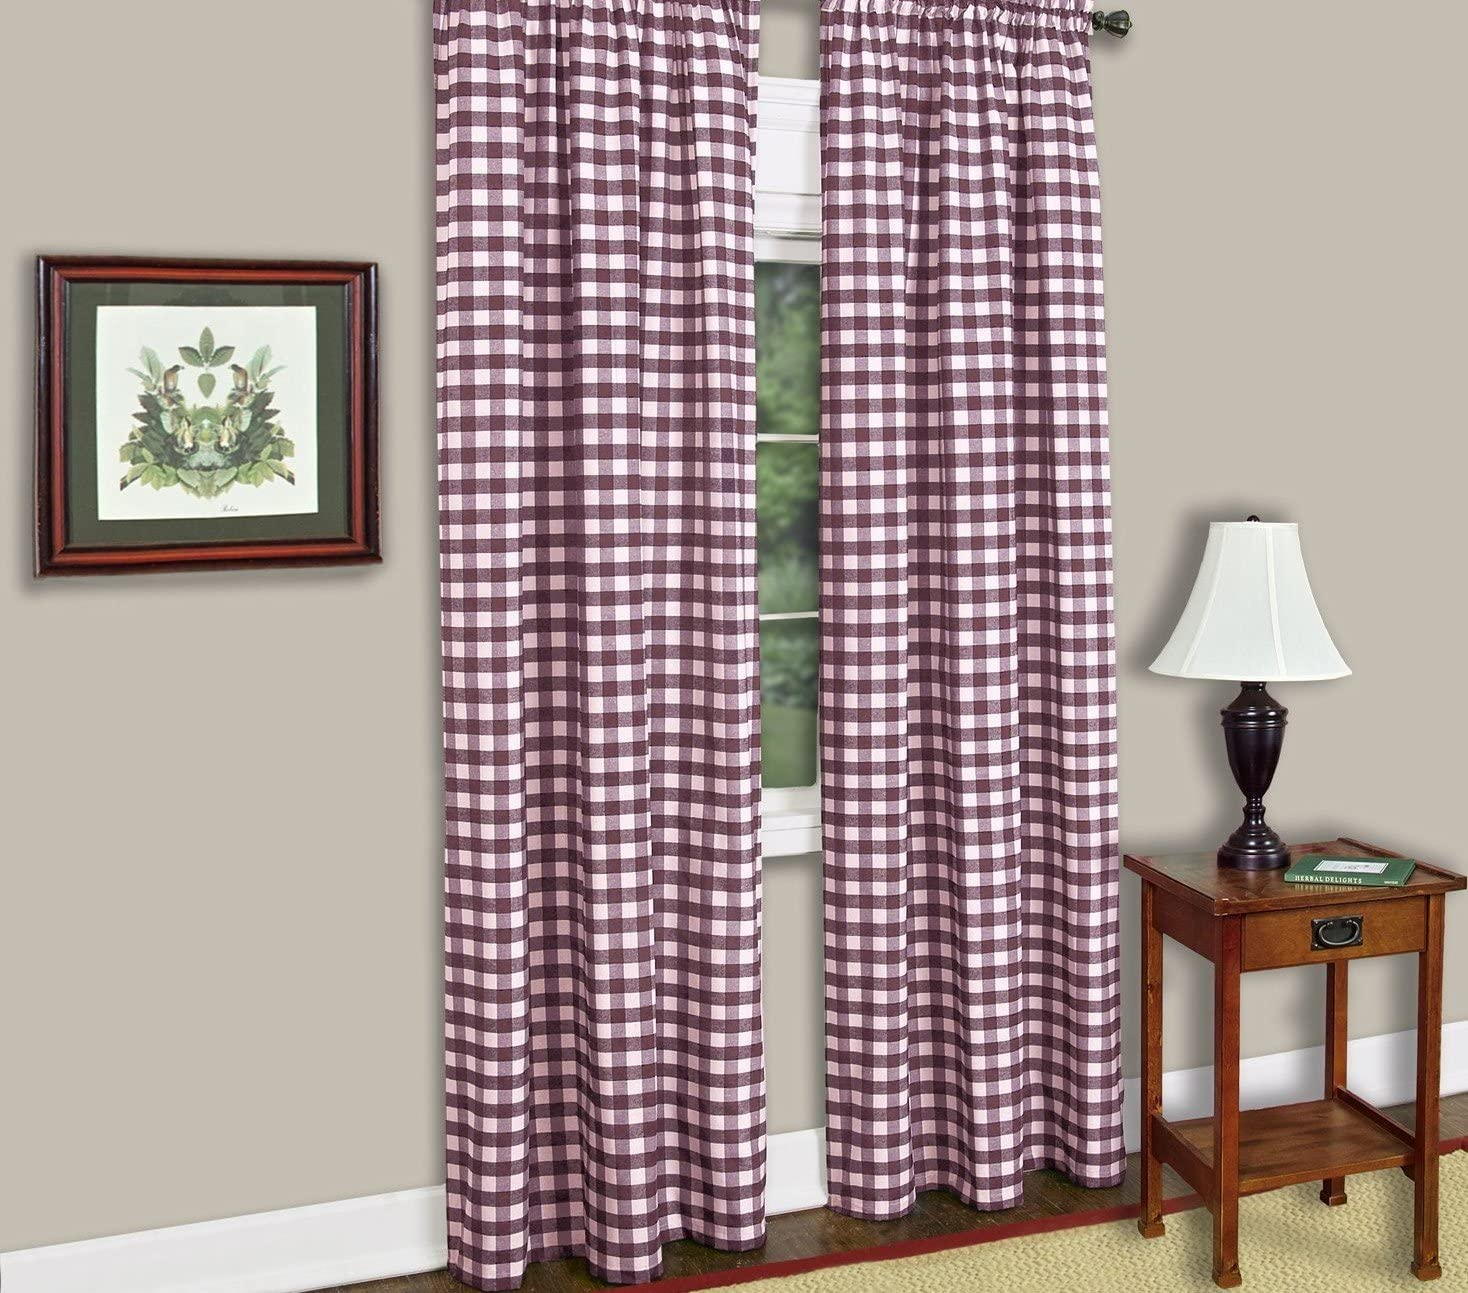 lovemyfabric Gingham/Checkered 100 Polyester Curtain Window Treatment/Decor Panel-Purple and White 2